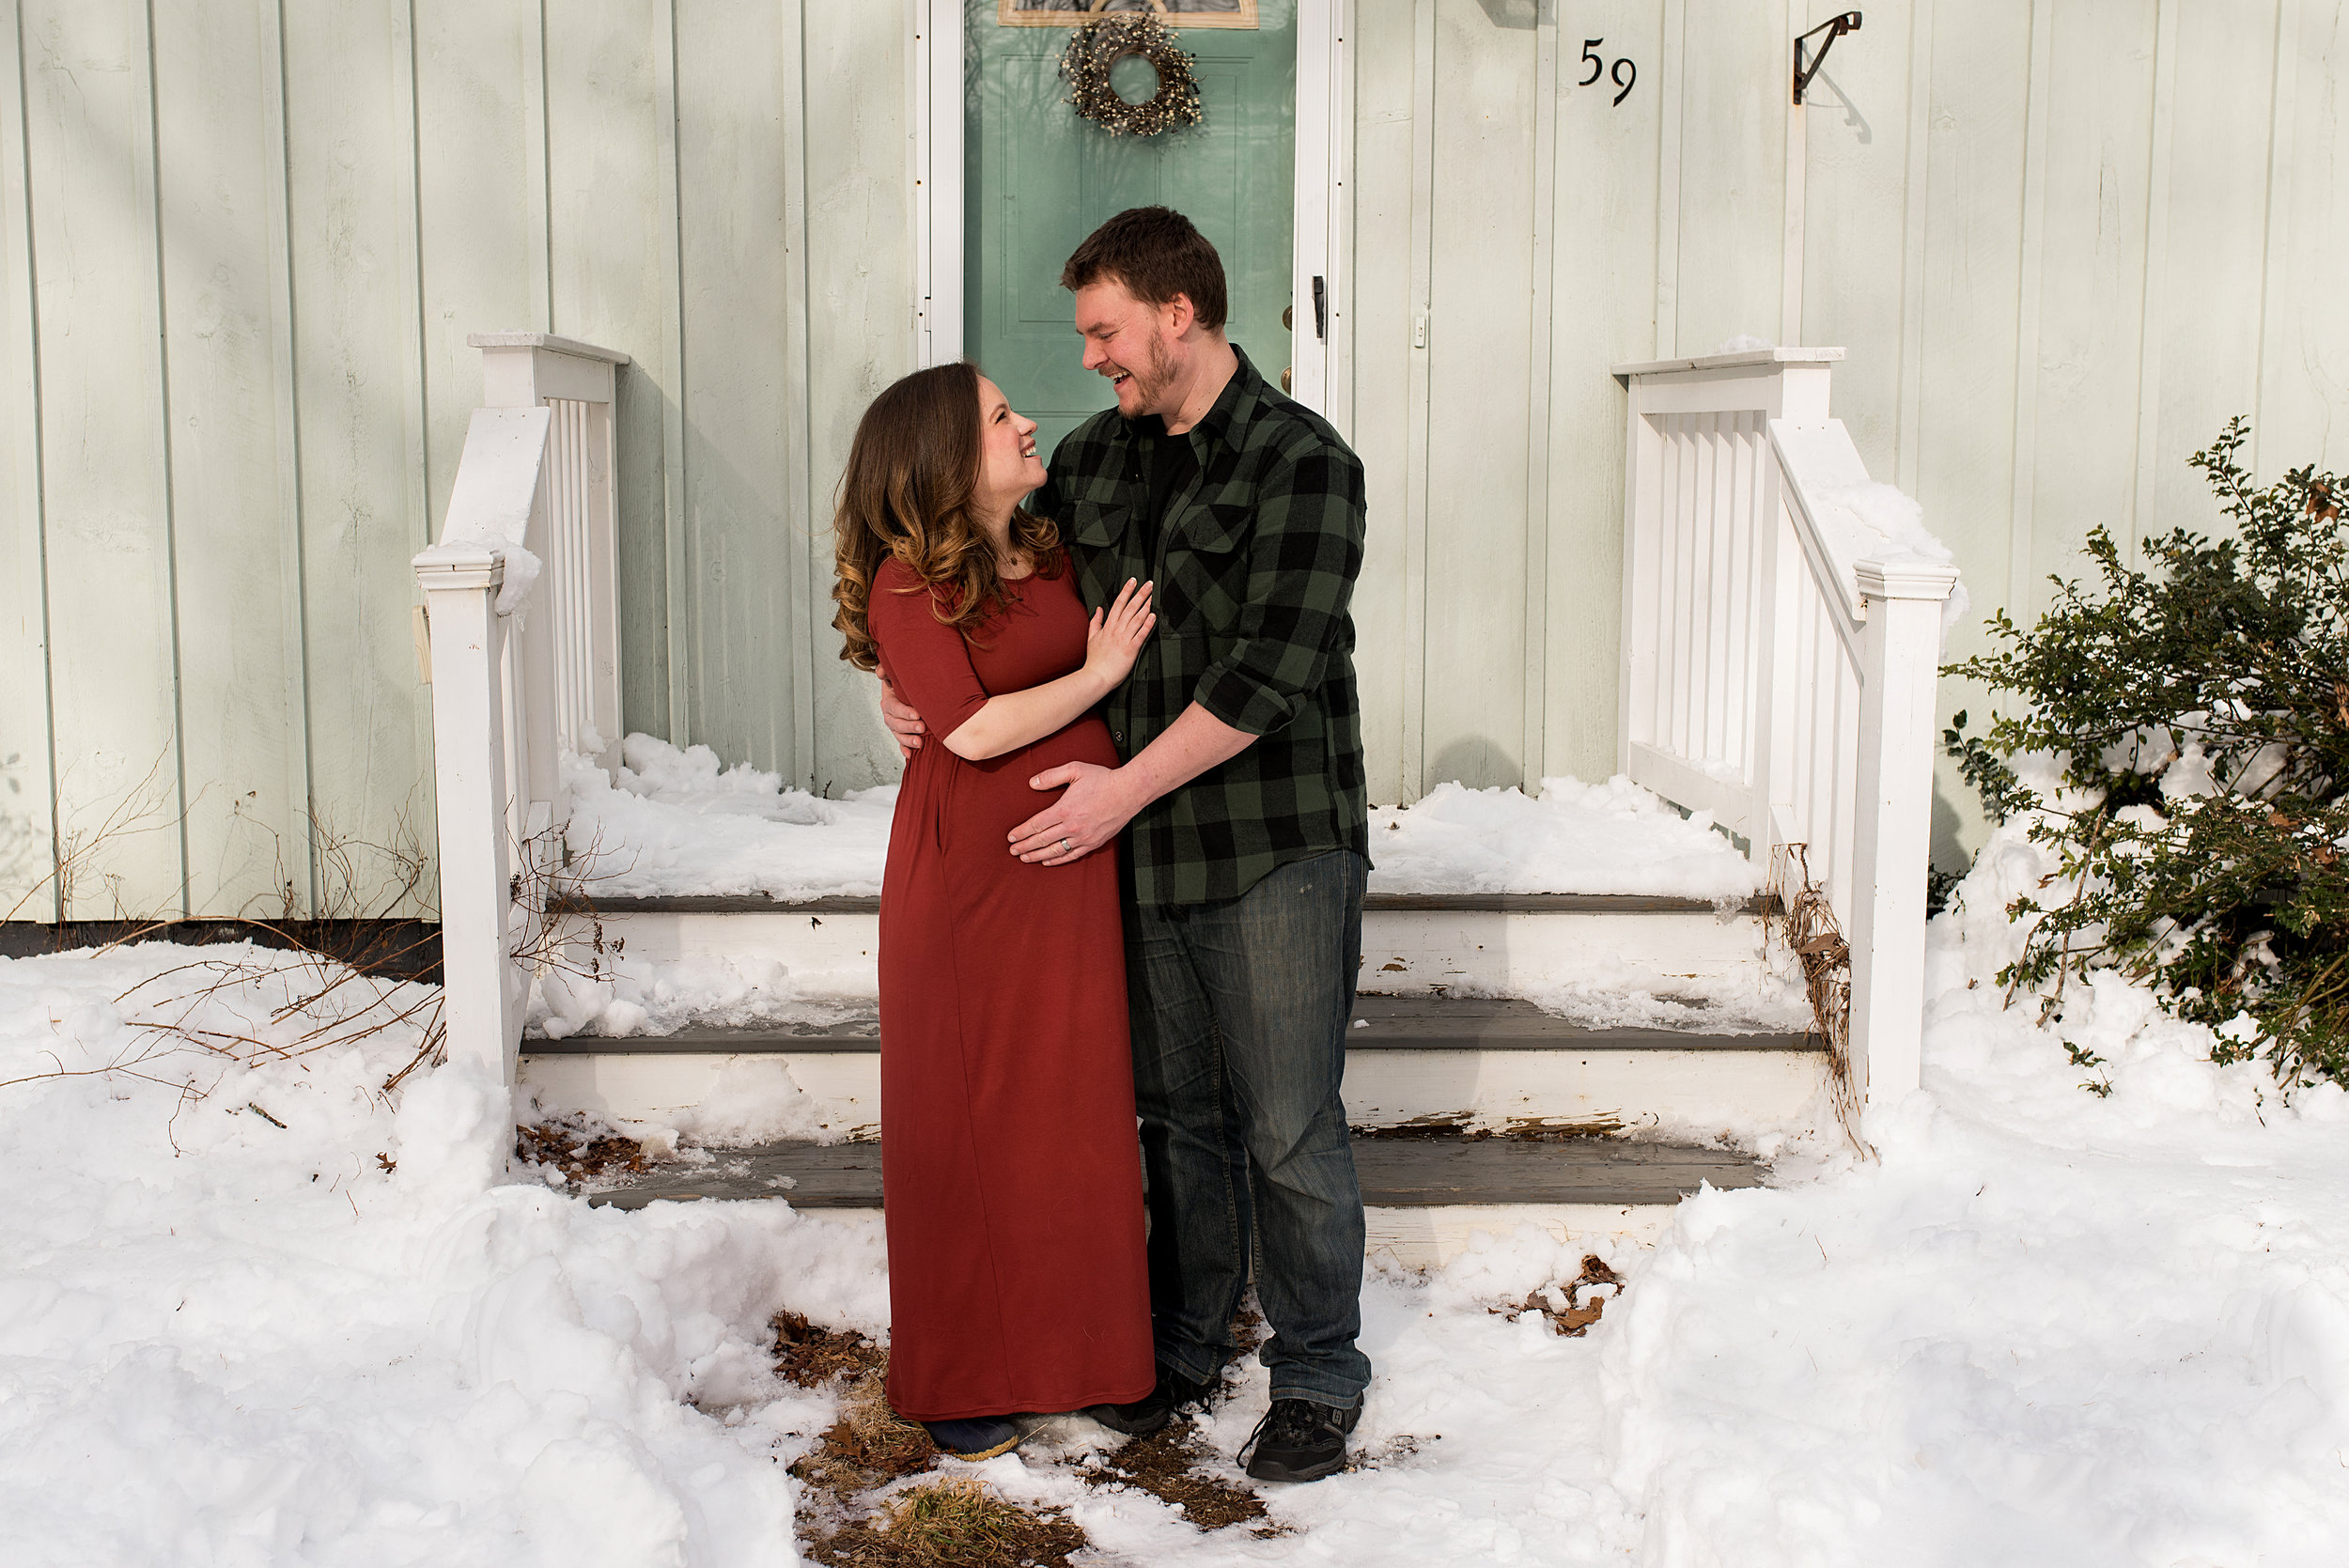 CT maternity photography. husband and wife standing in the snow during maternity portraits.